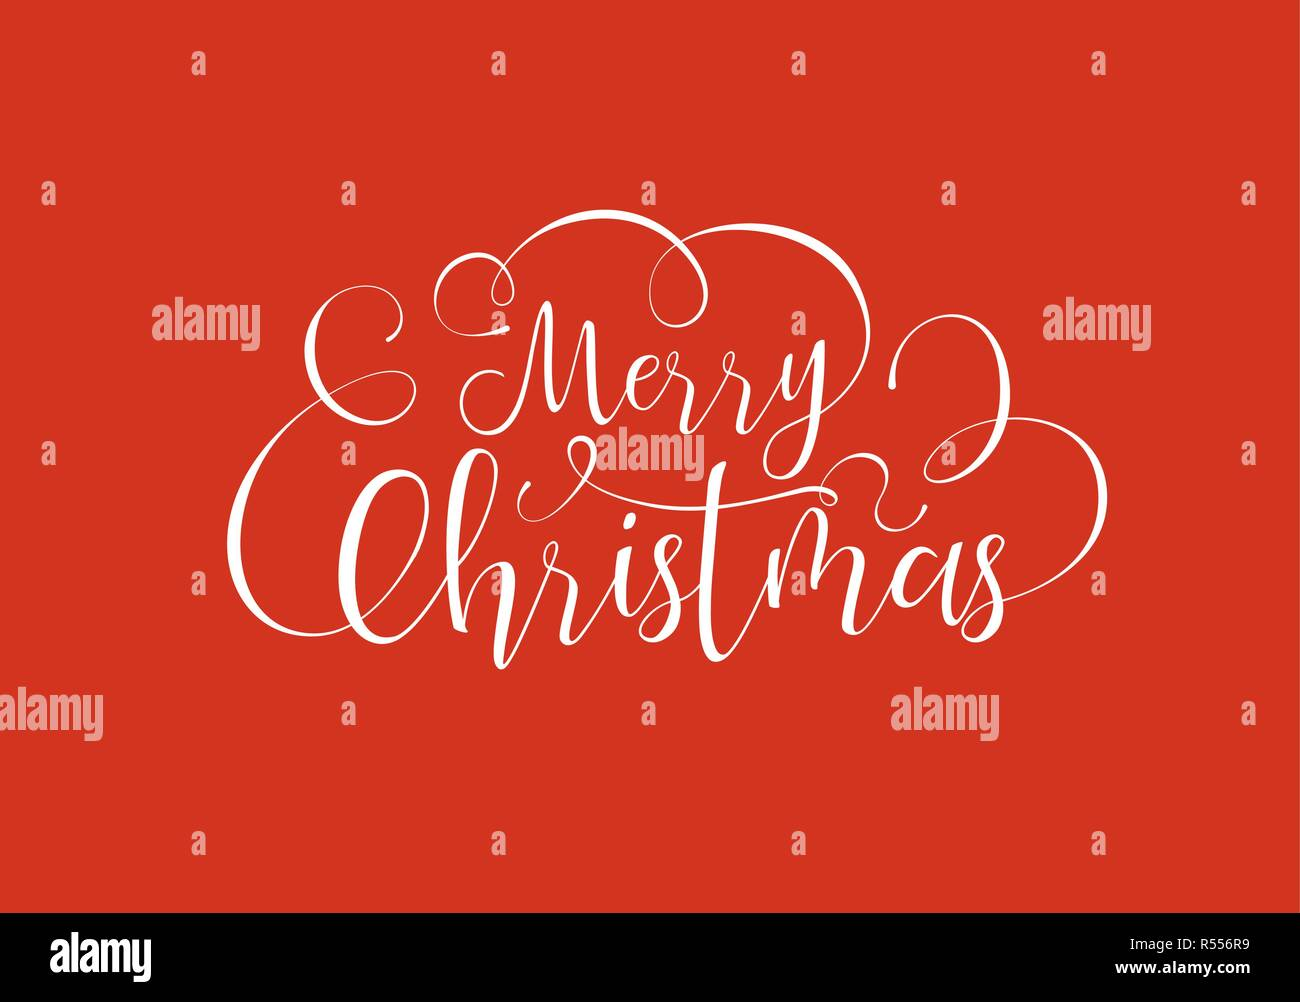 Merry Christmas Calligraphic Greeting Card Or Party Invitation